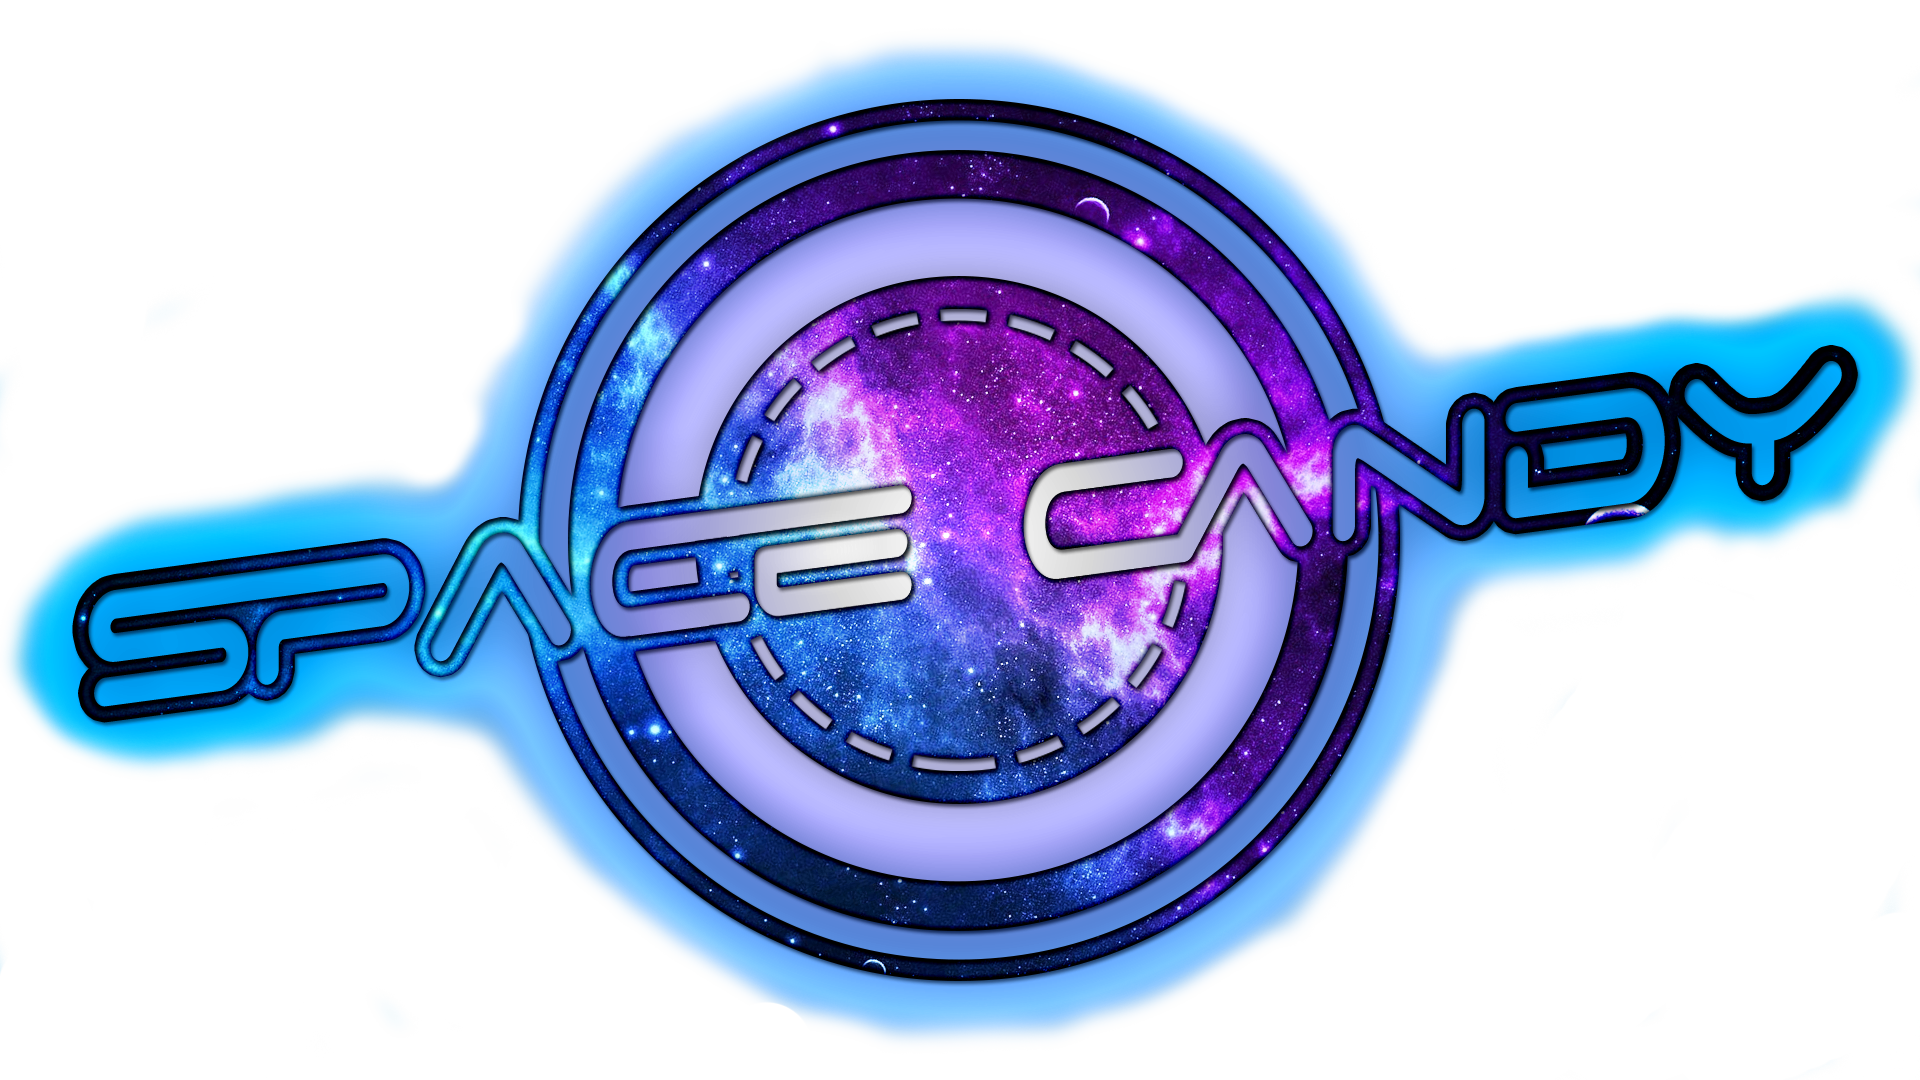 Space Candy Logo